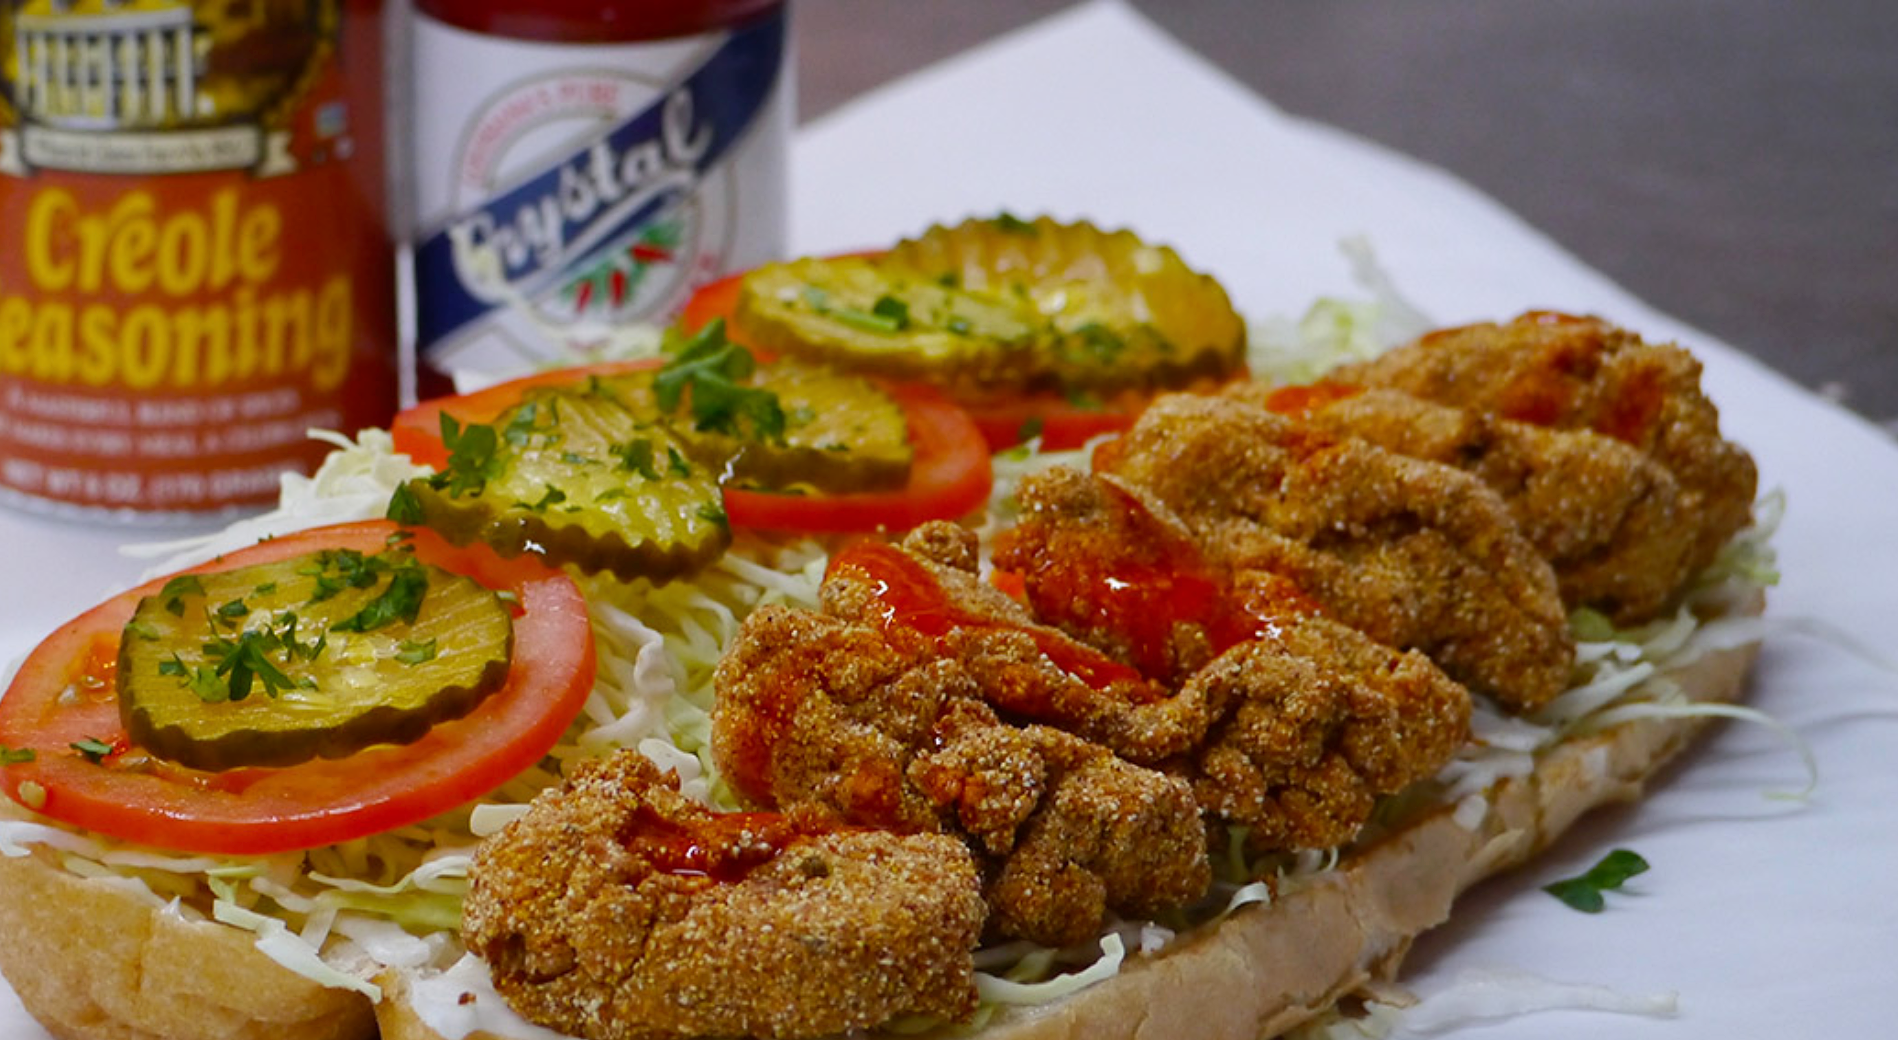 Enjoy the flavors of New Orleans in LA with these killer po'boys